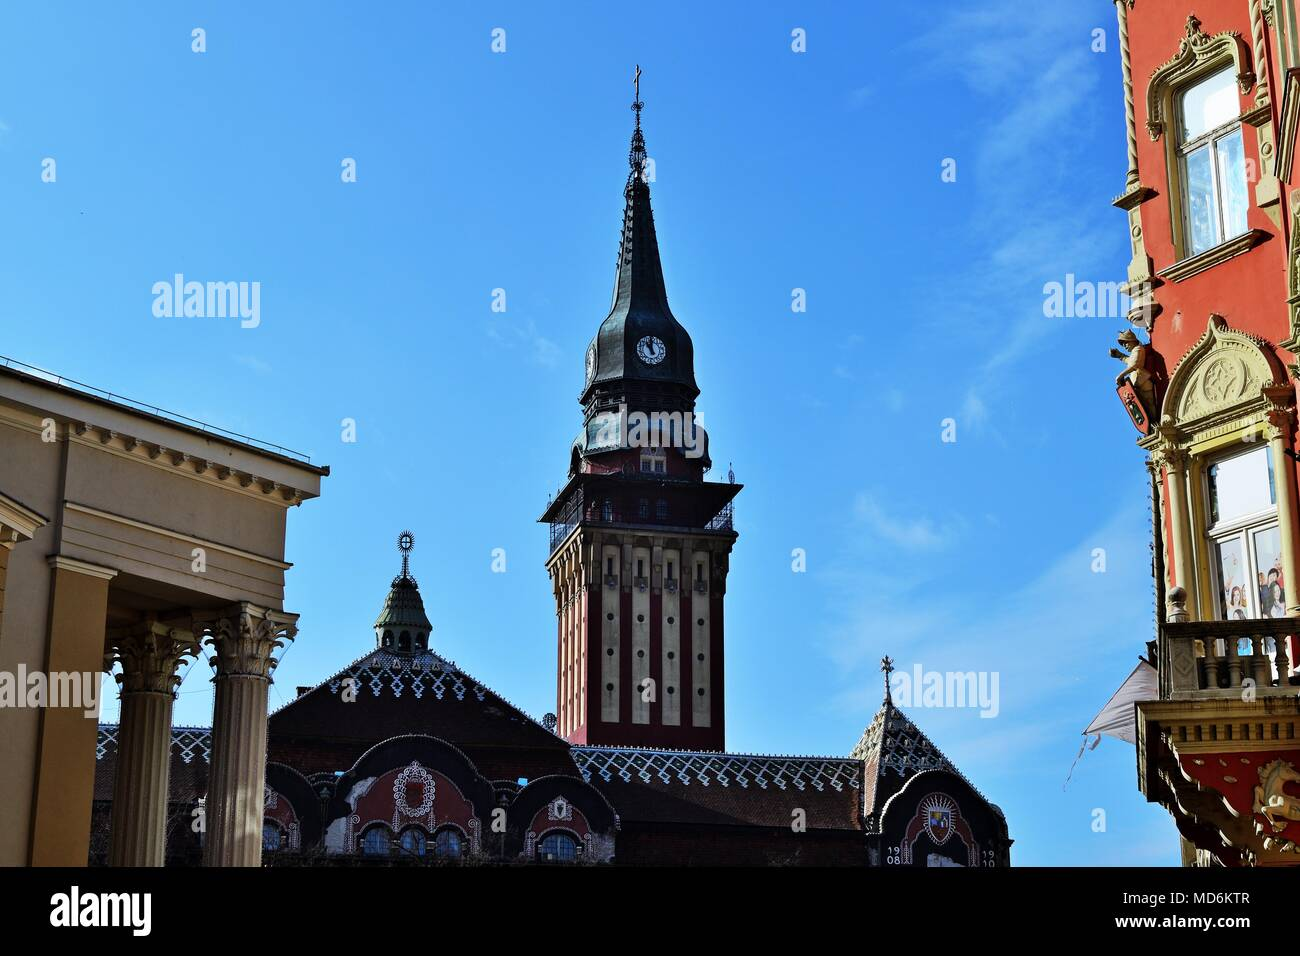 Twon Hall in Subotica, Serbia - Stock Image